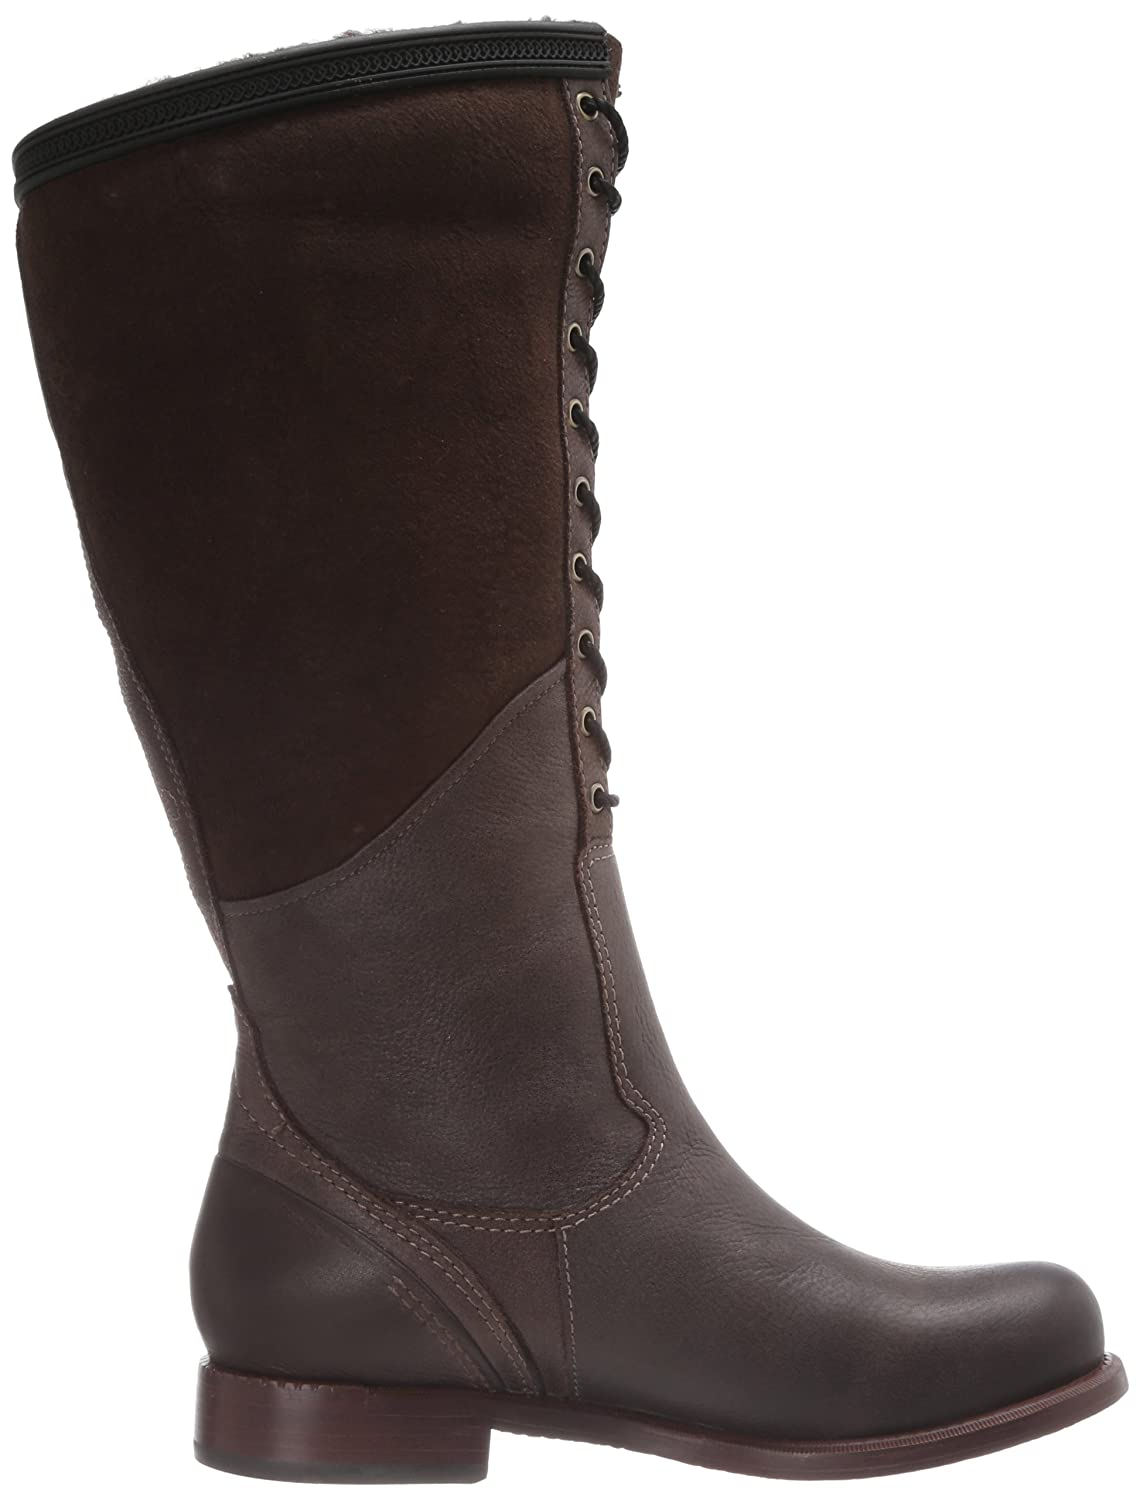 Timberland Boot Company Lucille Shearling Boots Echte